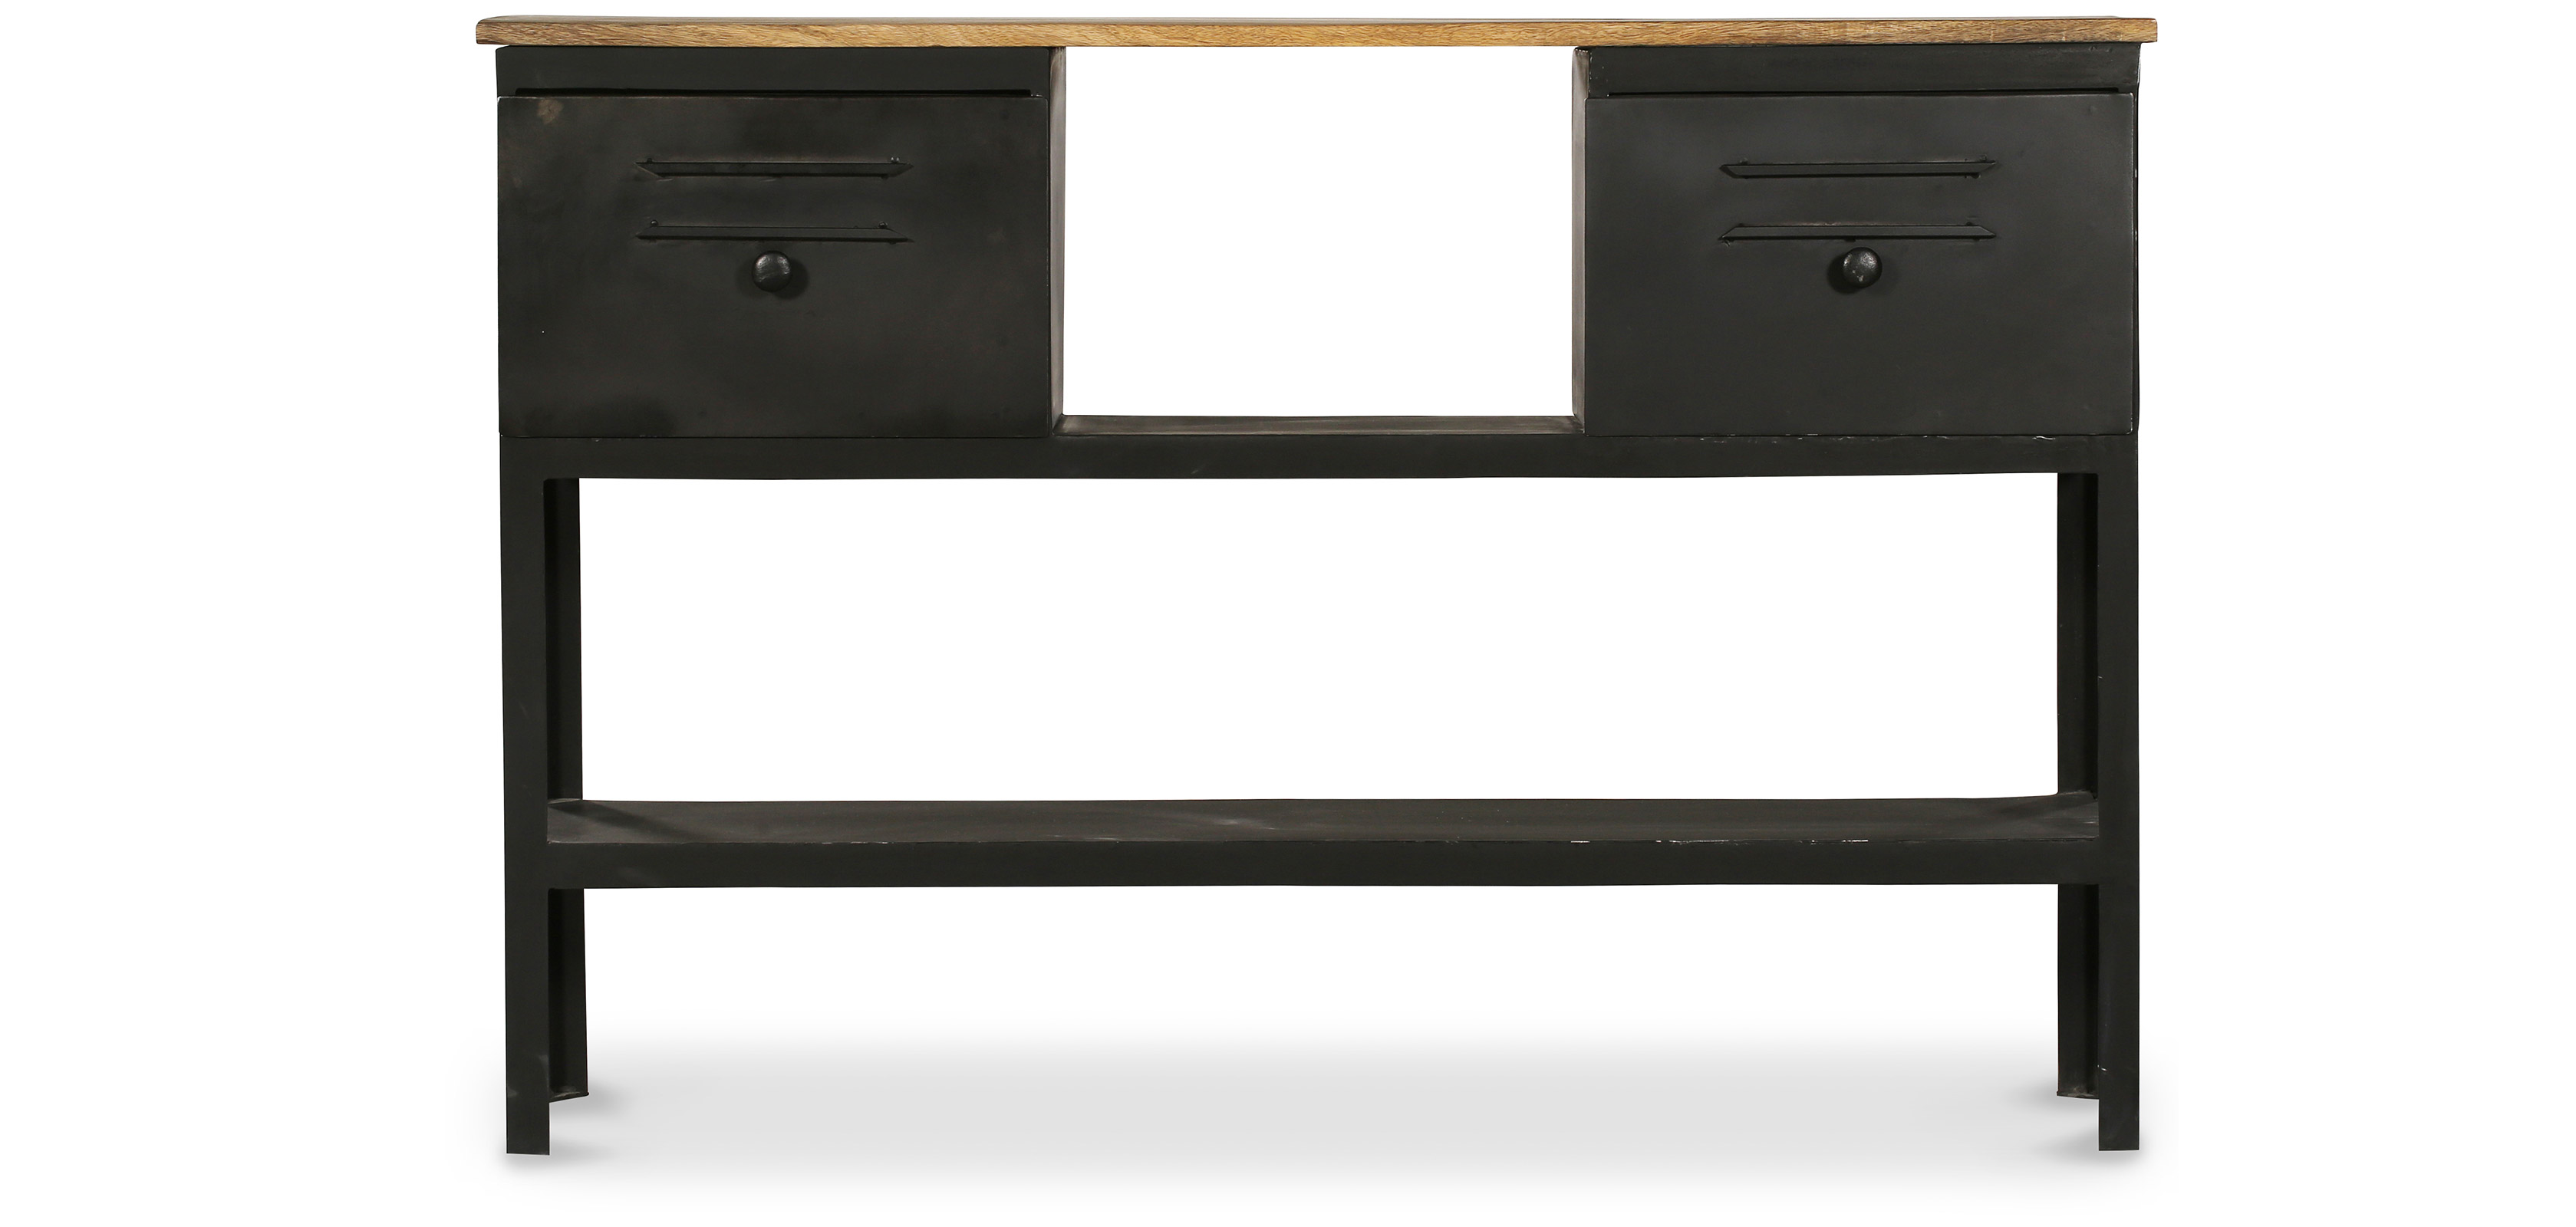 console industrielle 2 tiroirs m tal pas cher. Black Bedroom Furniture Sets. Home Design Ideas